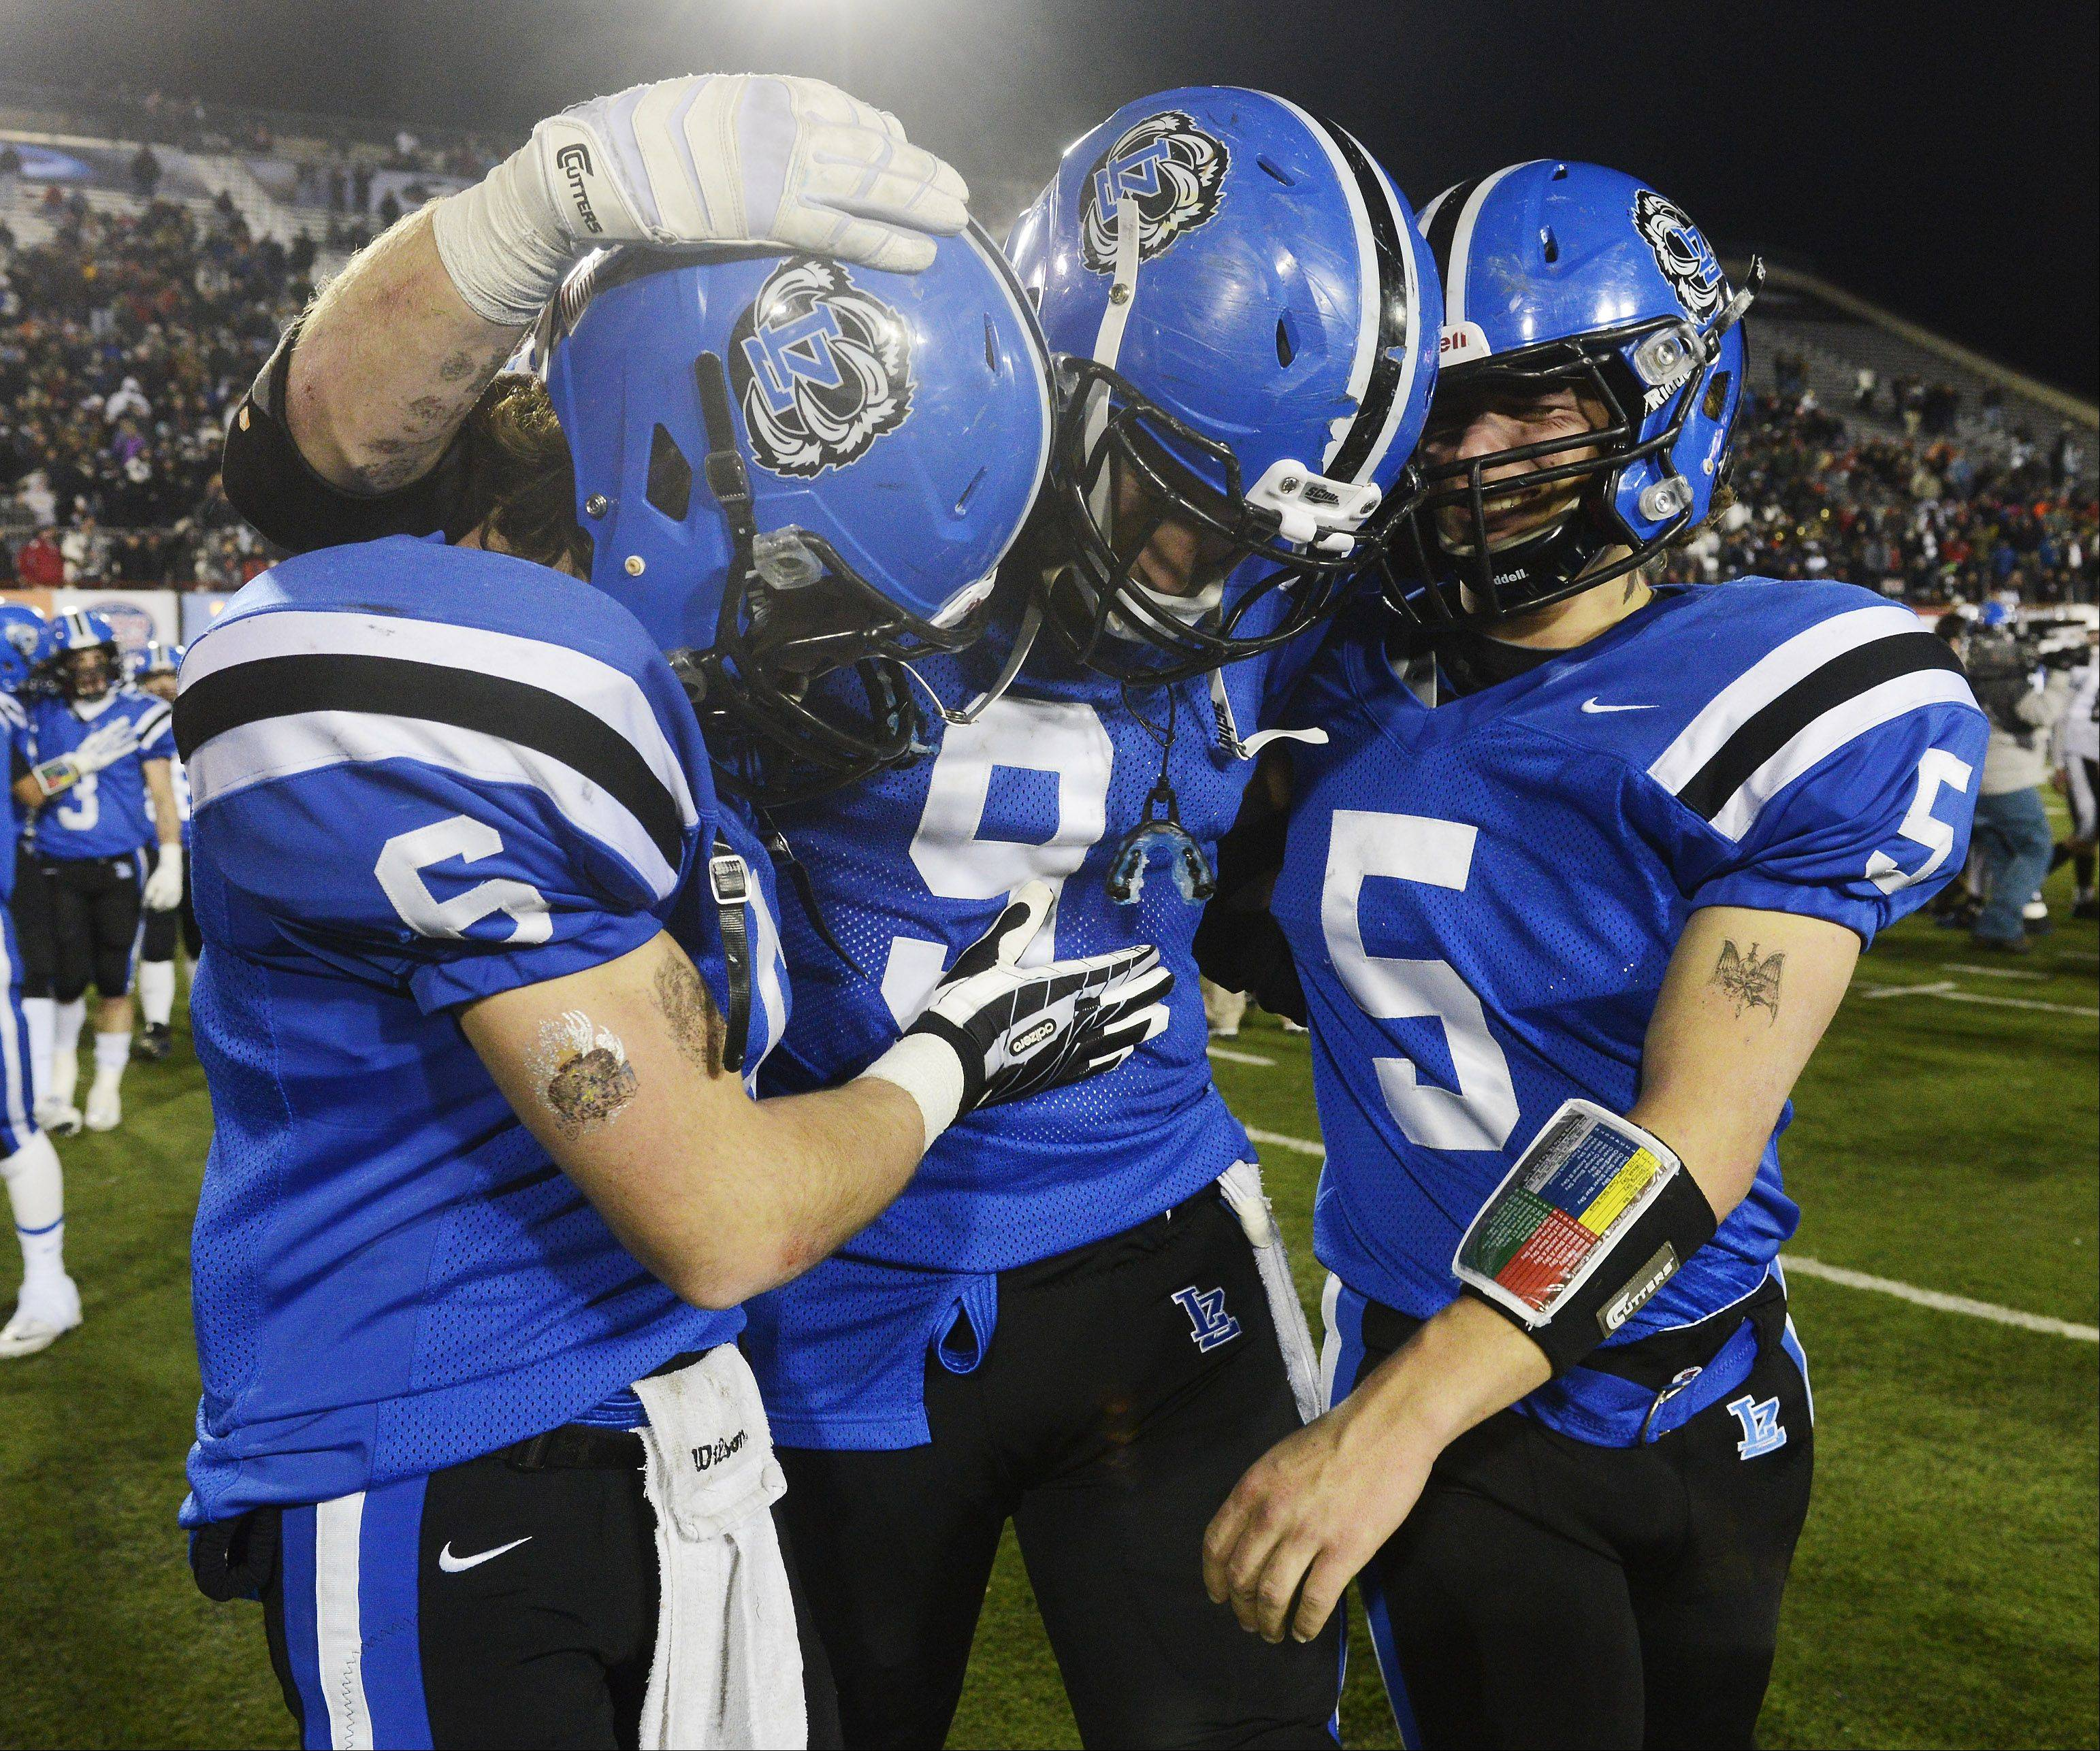 Images: Lake Zurich vs. Mt. Carmel football